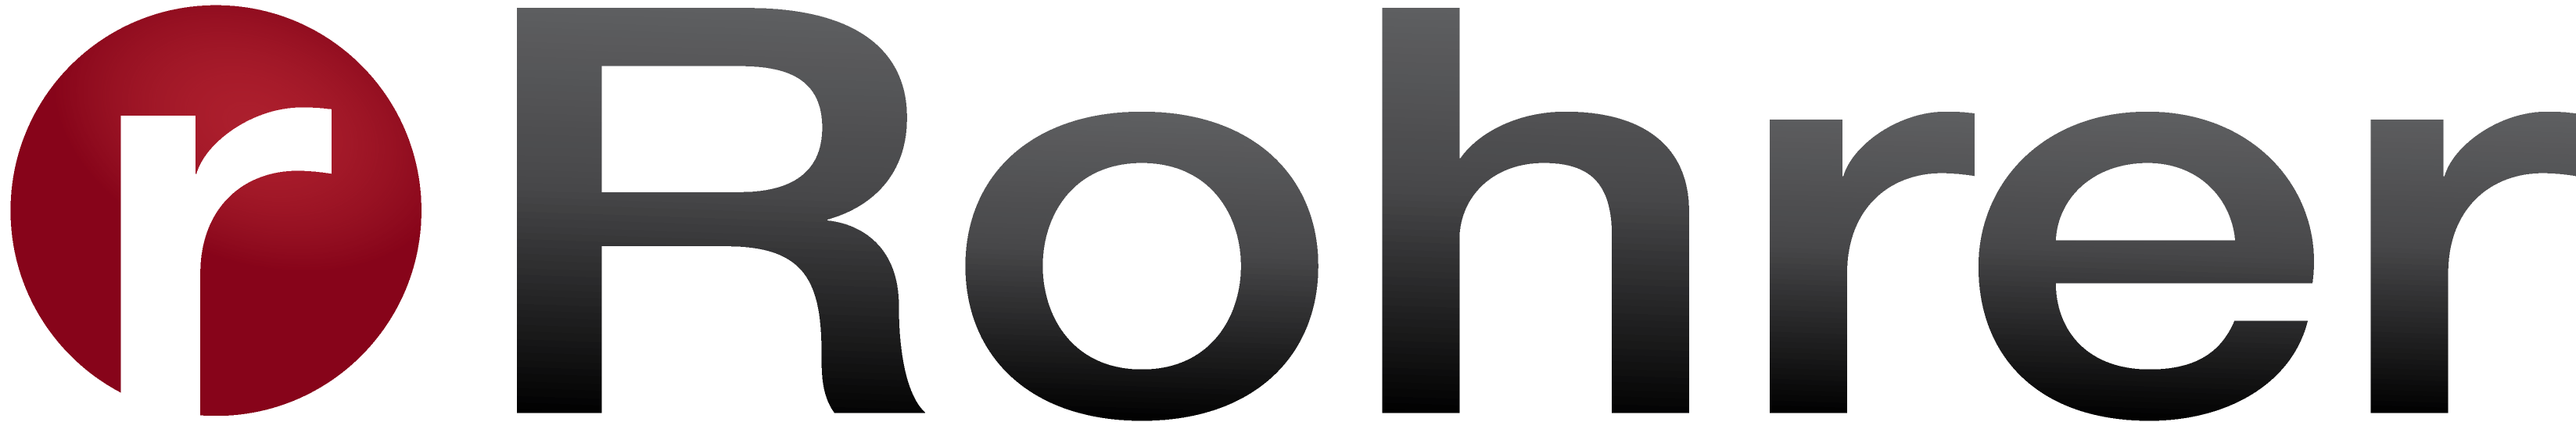 Rohrer Corporation logo